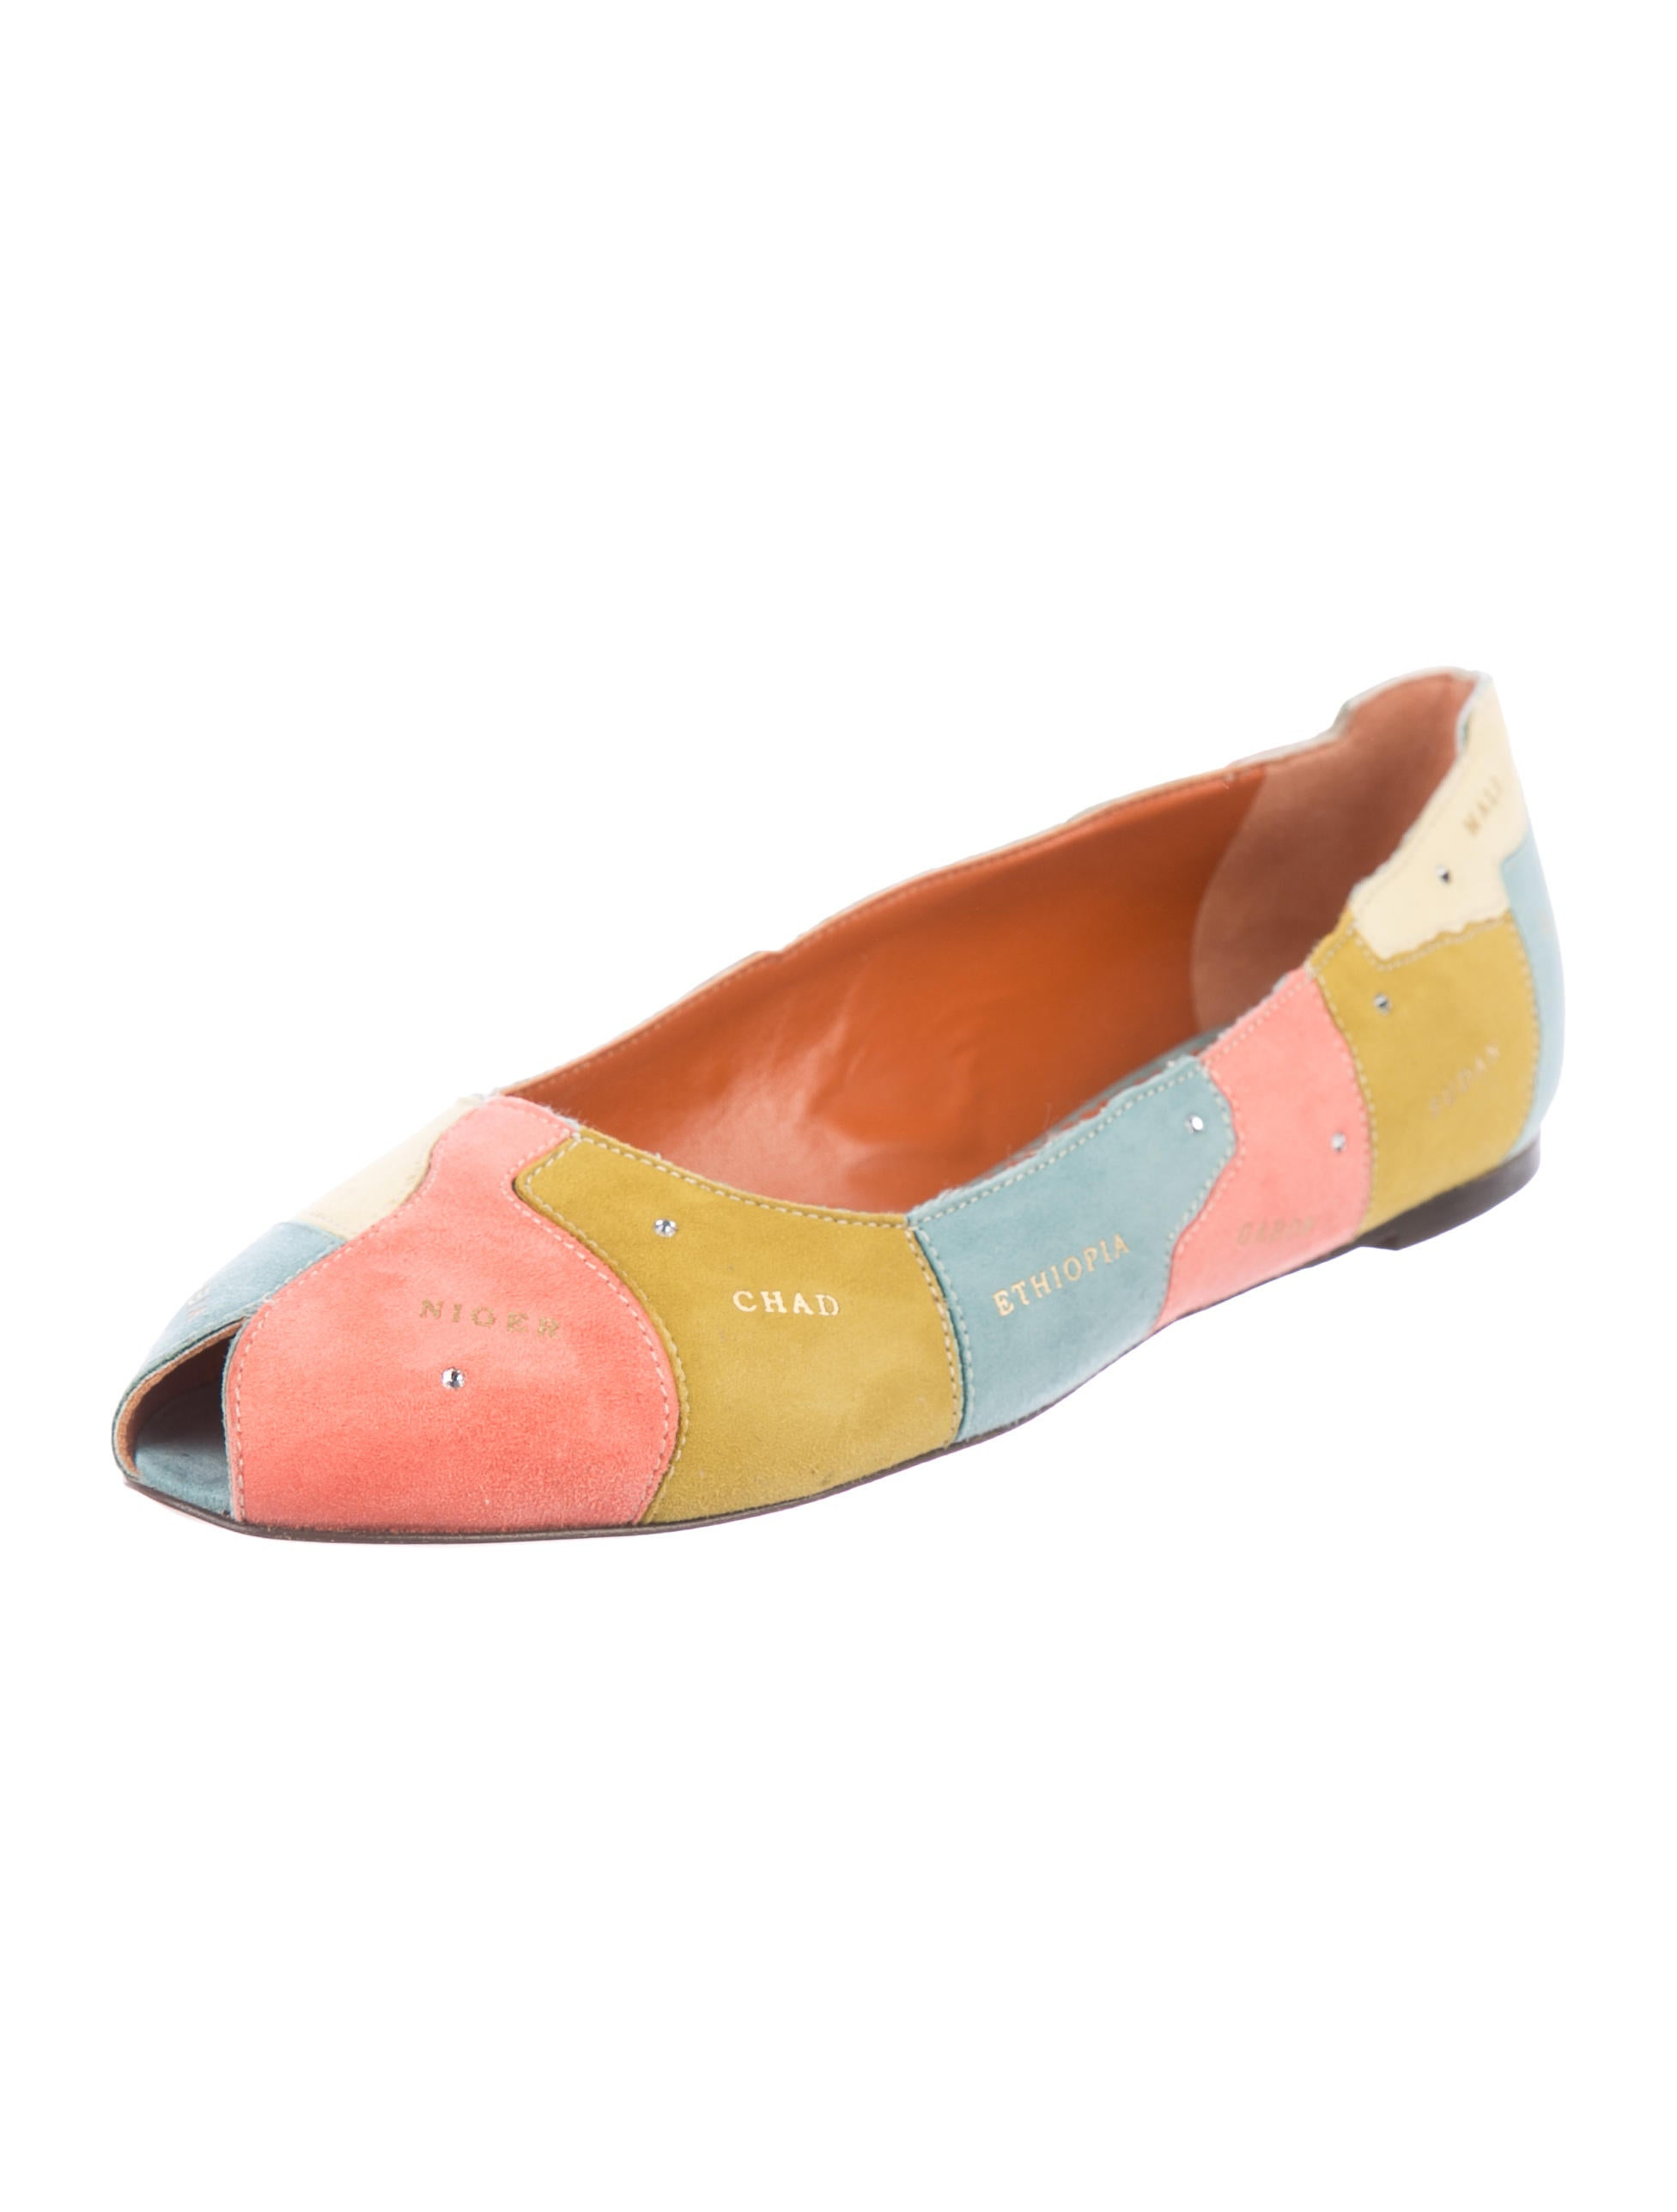 discount many kinds of Charlotte Olympia Well Travelled Peep-Toe Flats w/ Tags discount hot sale sale the cheapest 3TvFMCj